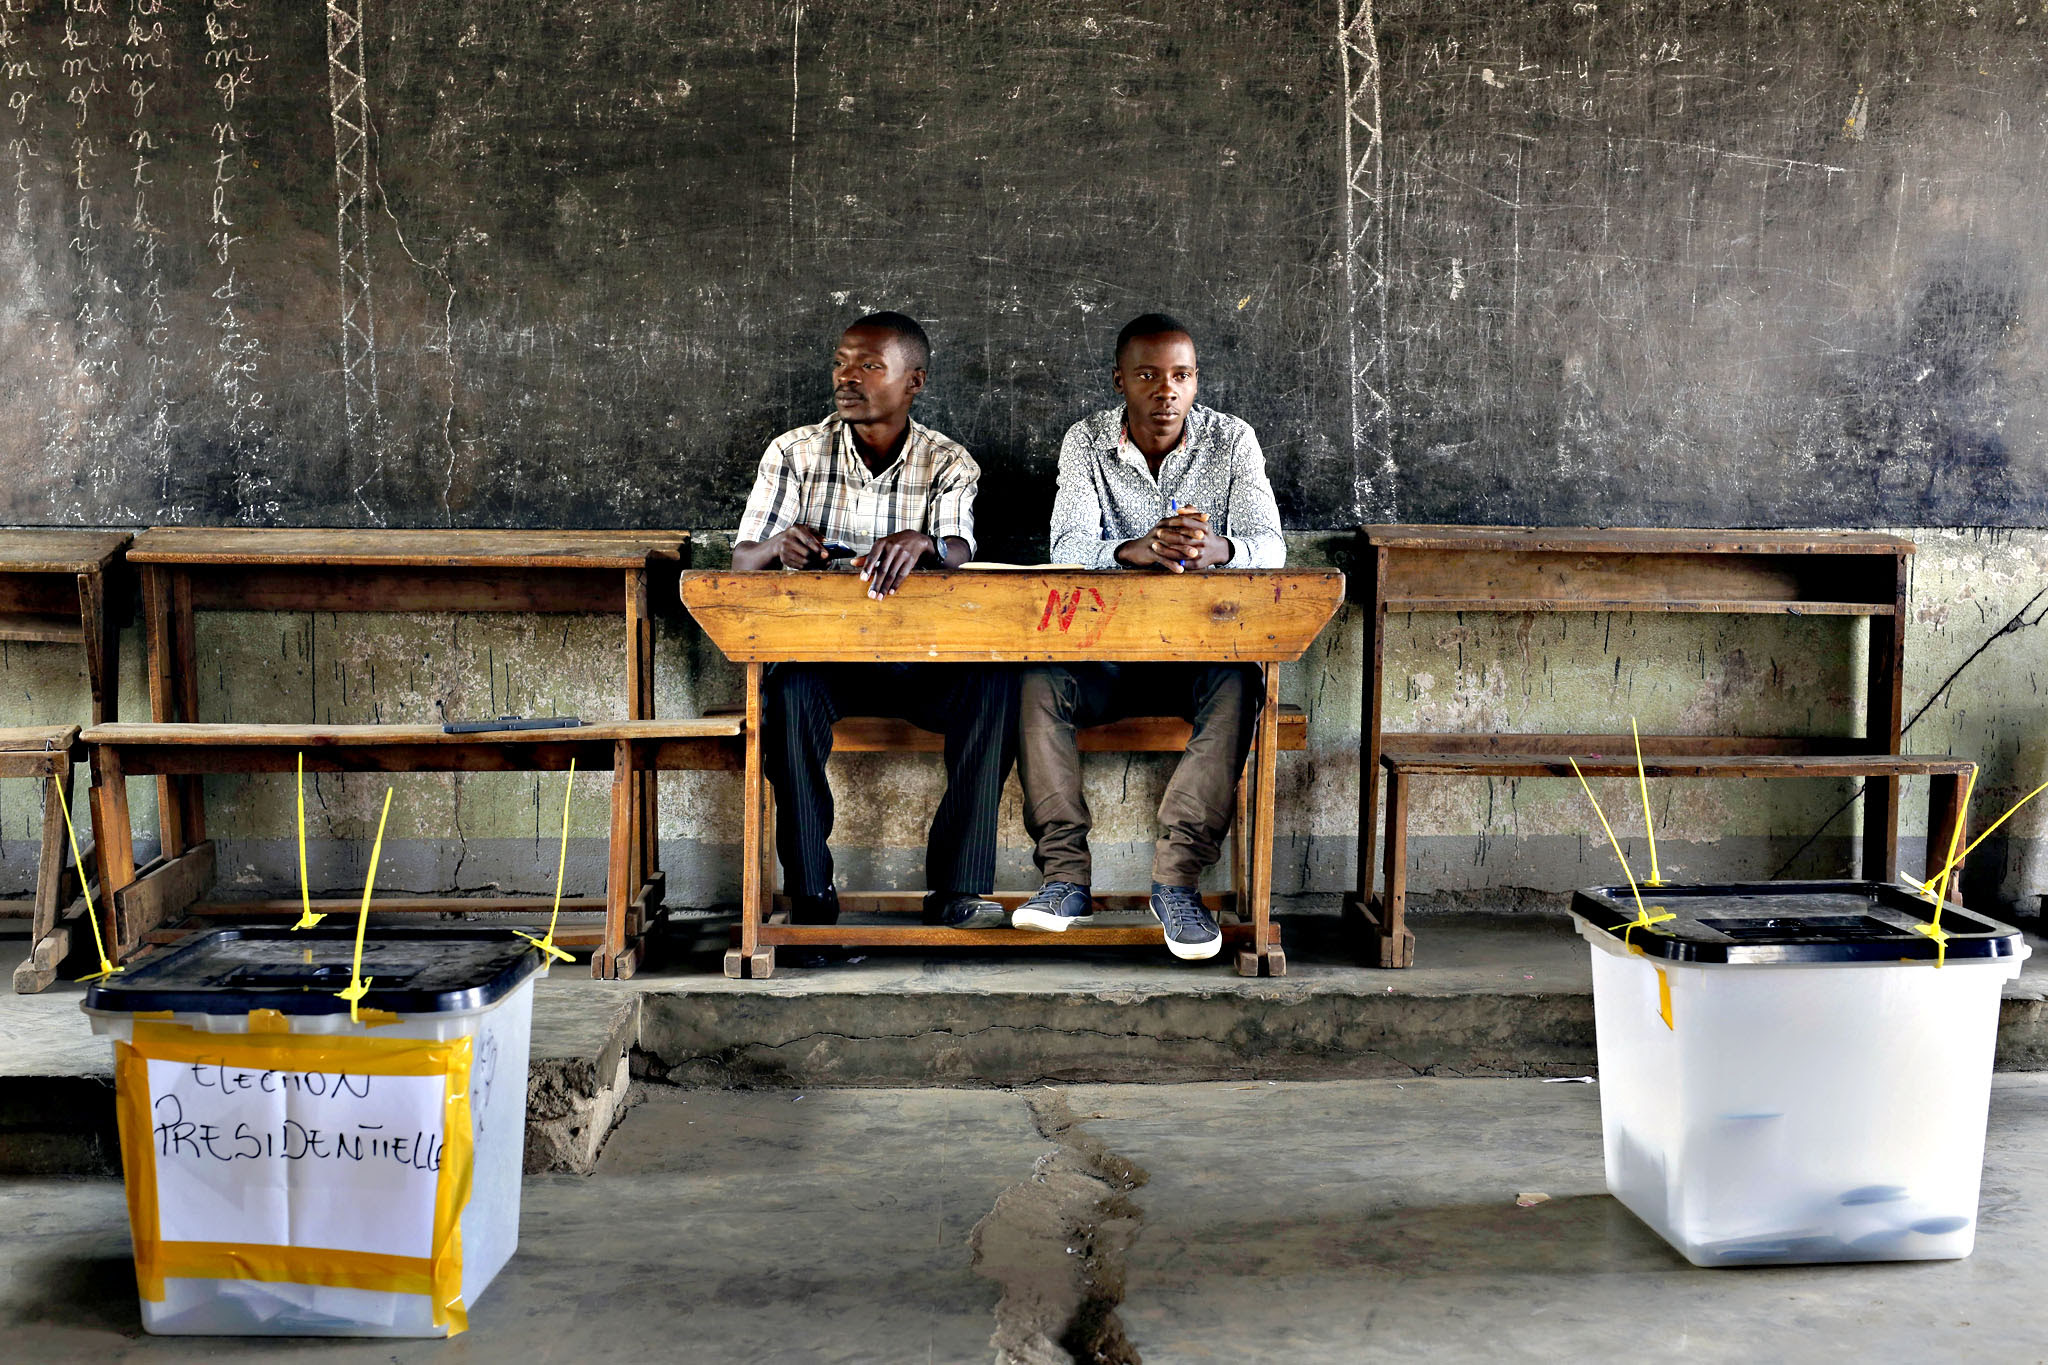 Election observers sit in an empty polling station for the presidential elections in Bujumbura, Burundi, Tuesday, July 21, 2015. A low turnout was experienced in several polling stations in the Burundi s capital at the start of voting in the country s presidential election following a night of explosions and gunfire in at least two opposition strongholds that oppose President Pierre Nkurunziza s candidacy for a third term in office